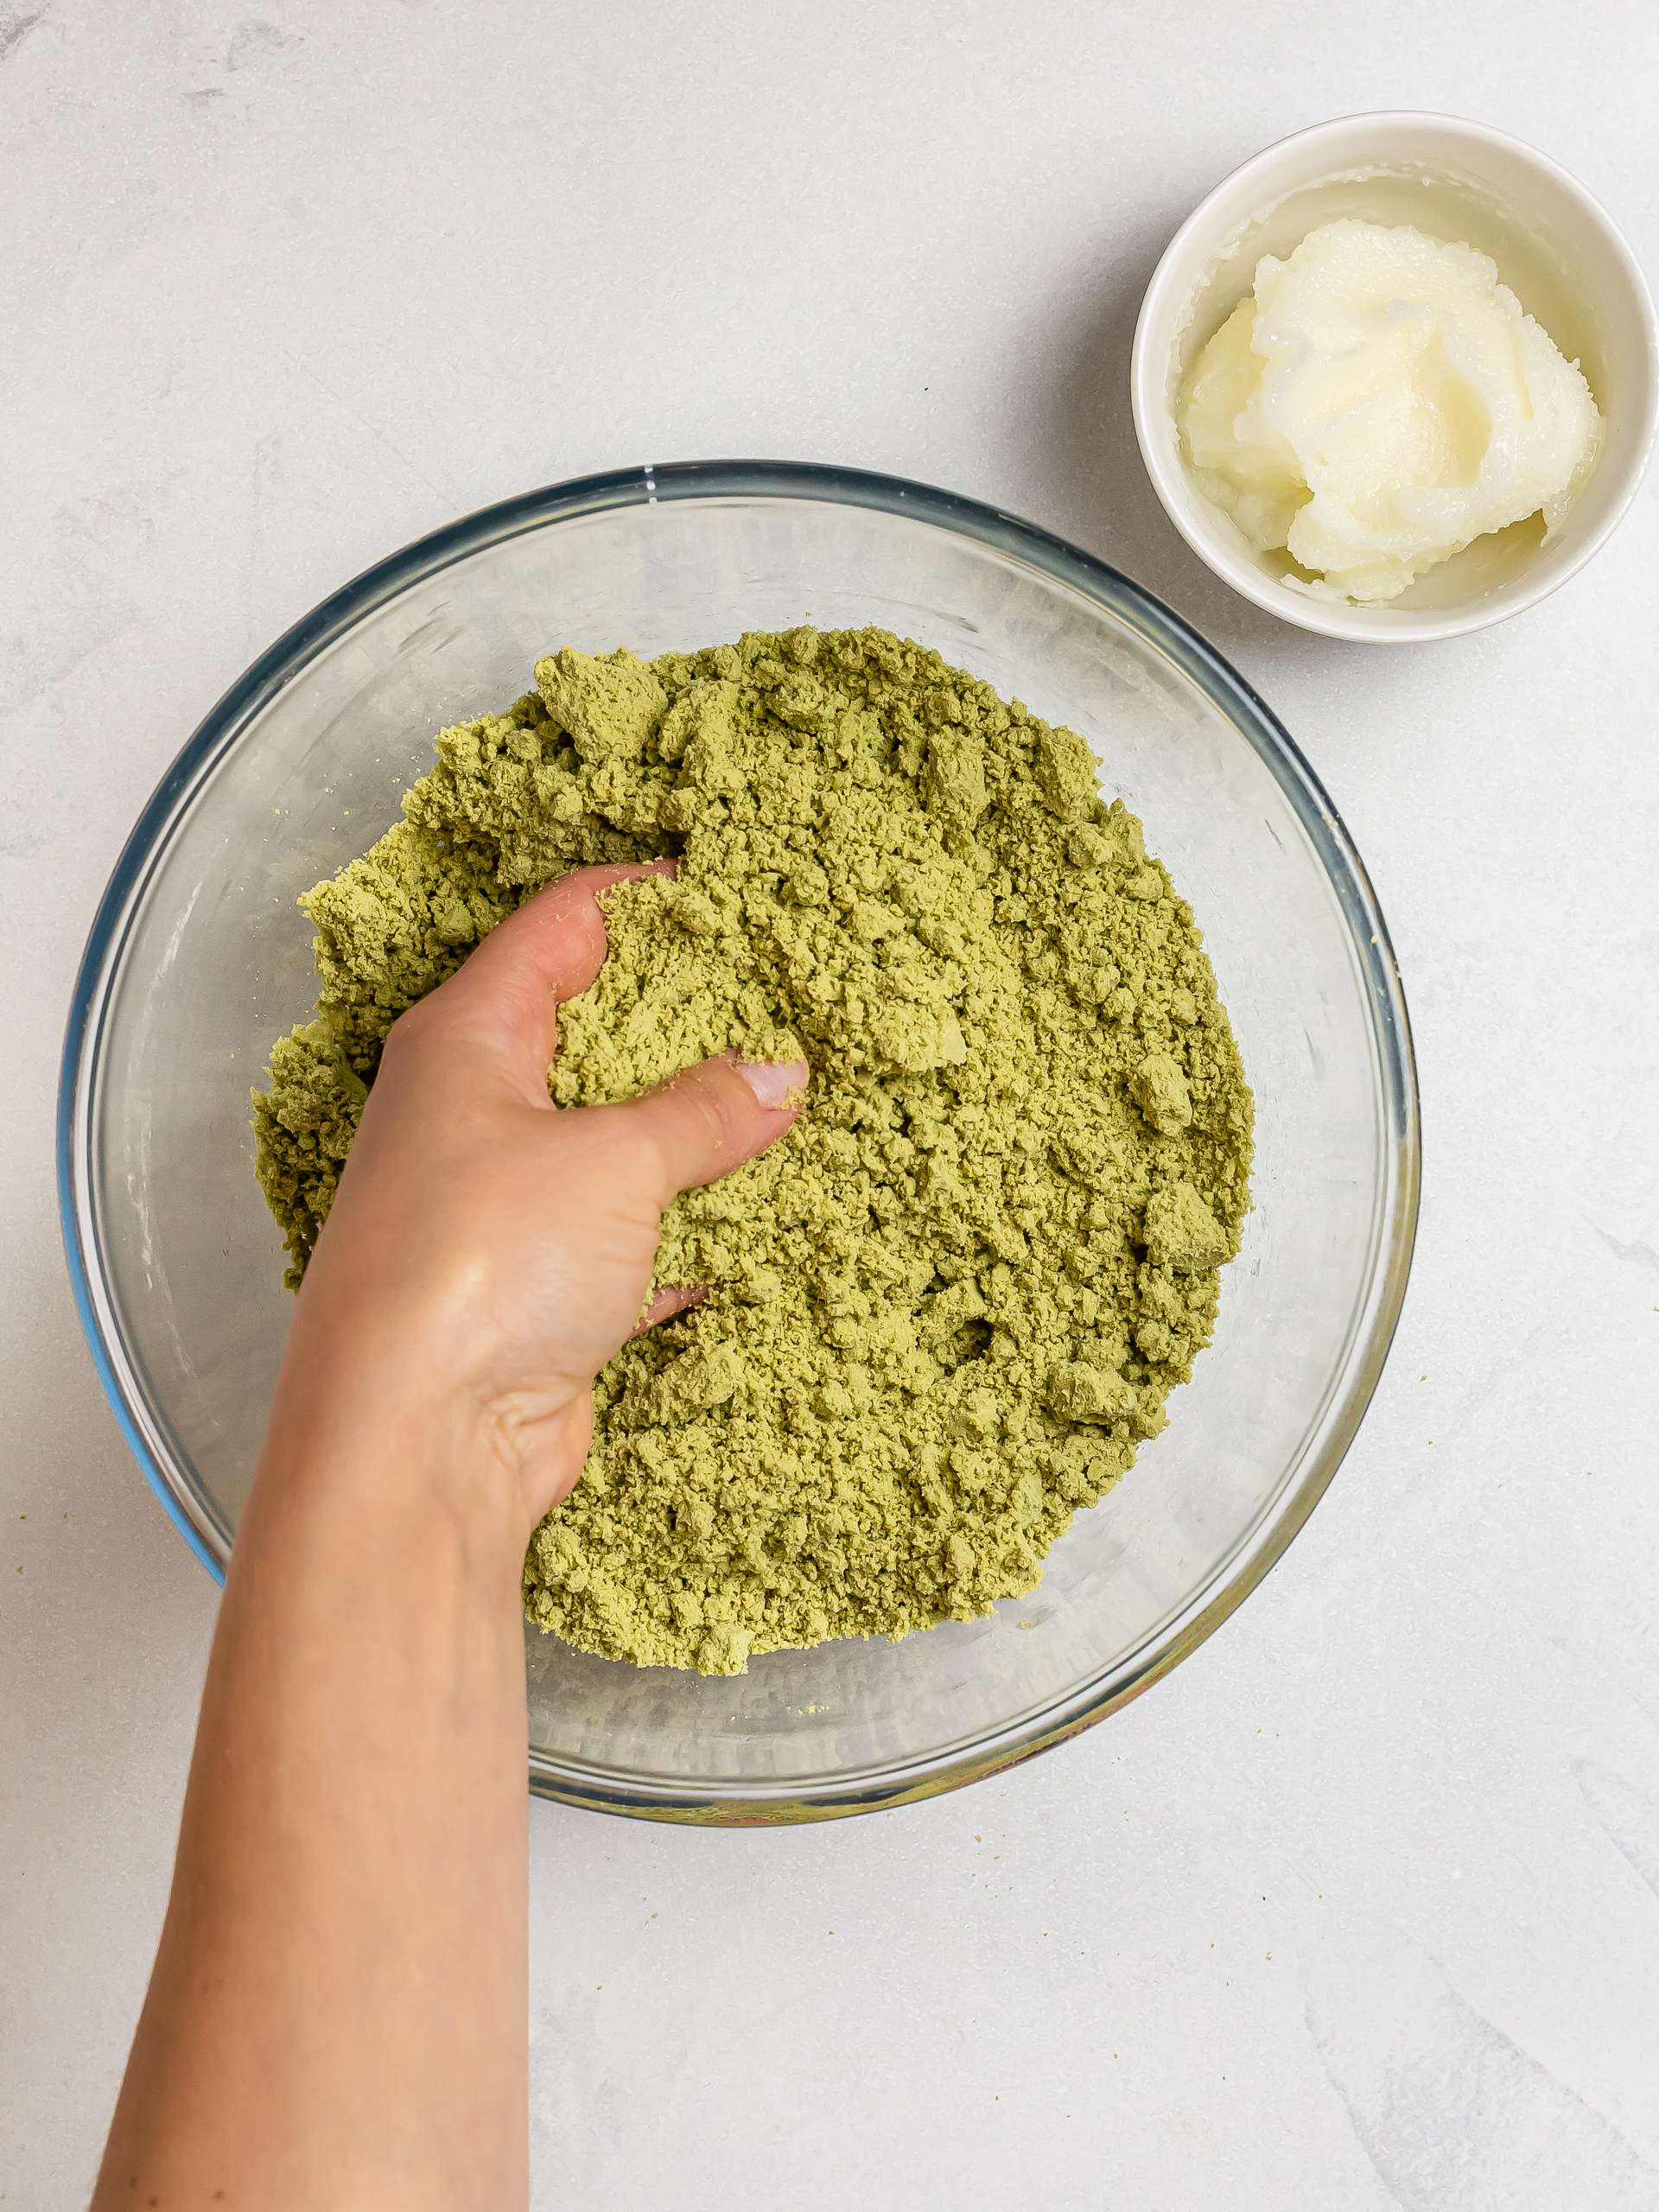 rubbing matcha scone dough with fingers